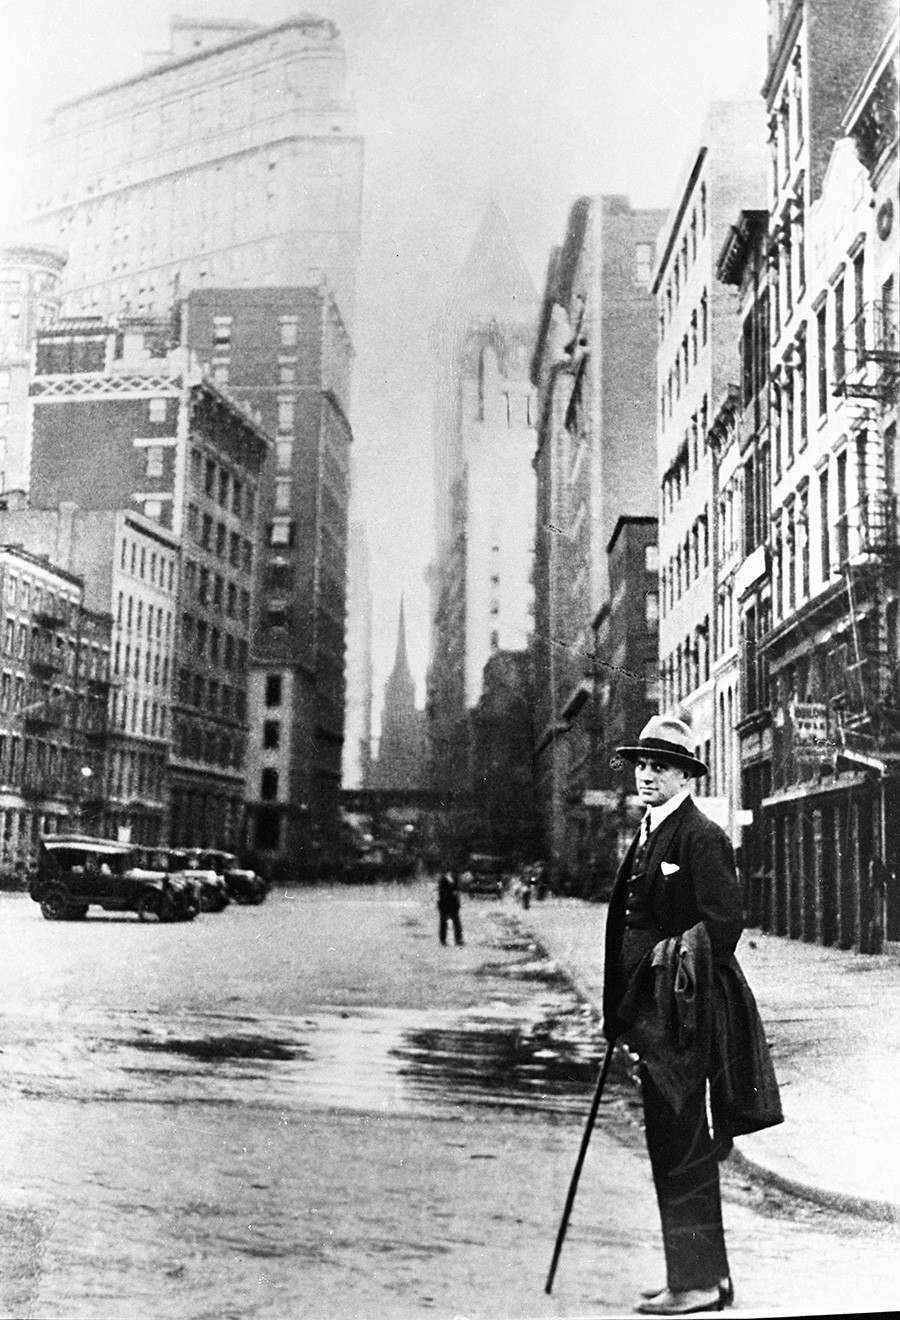 Vladimir Mayakovsky in New York. 1925. Reproduction of the photograph